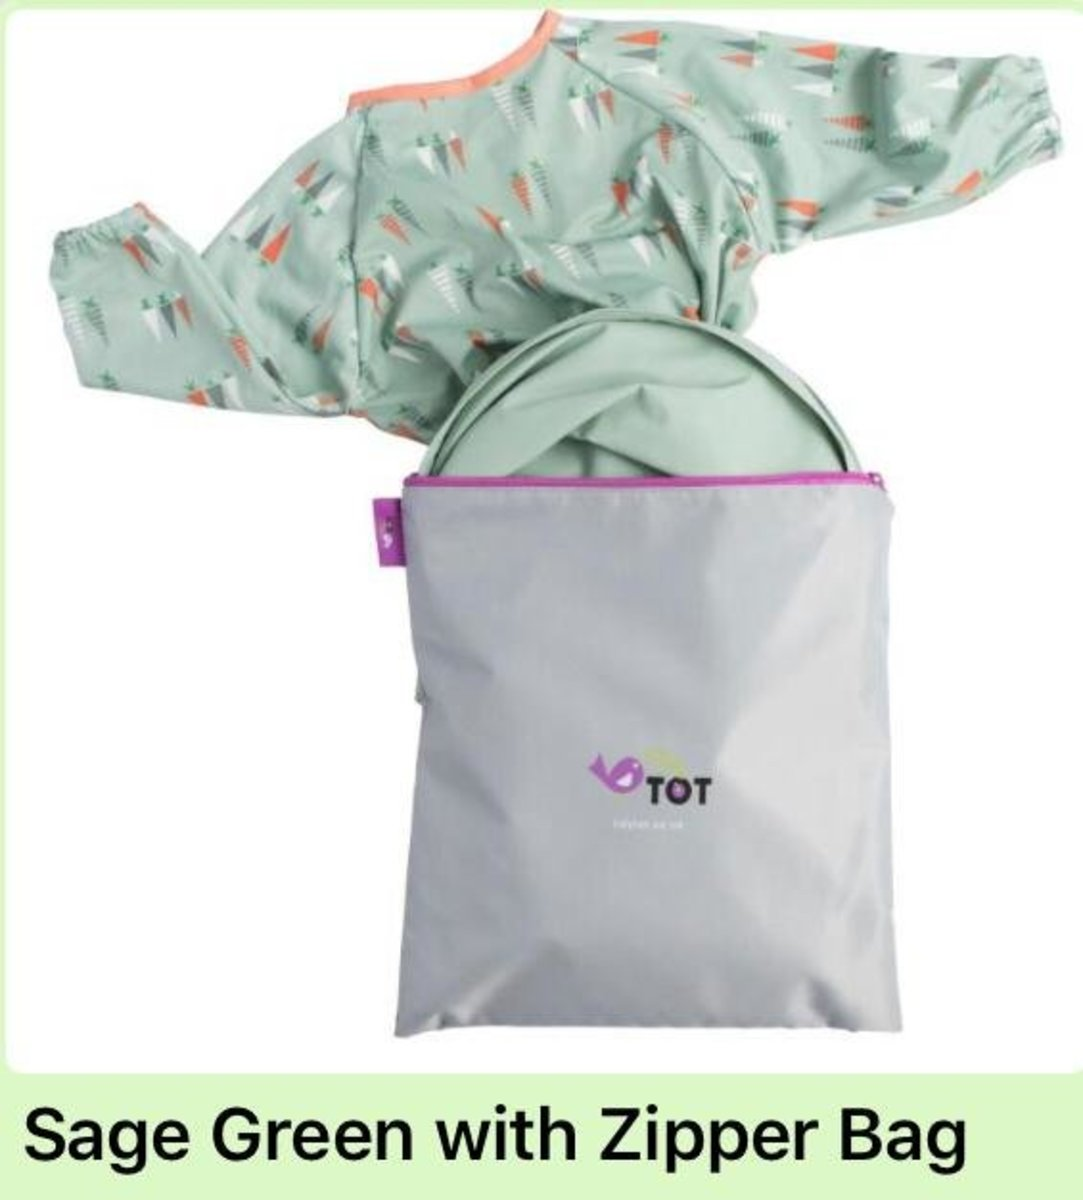 Tidy Tot All-In-One Bib & Tray Kit (with zipper bag)